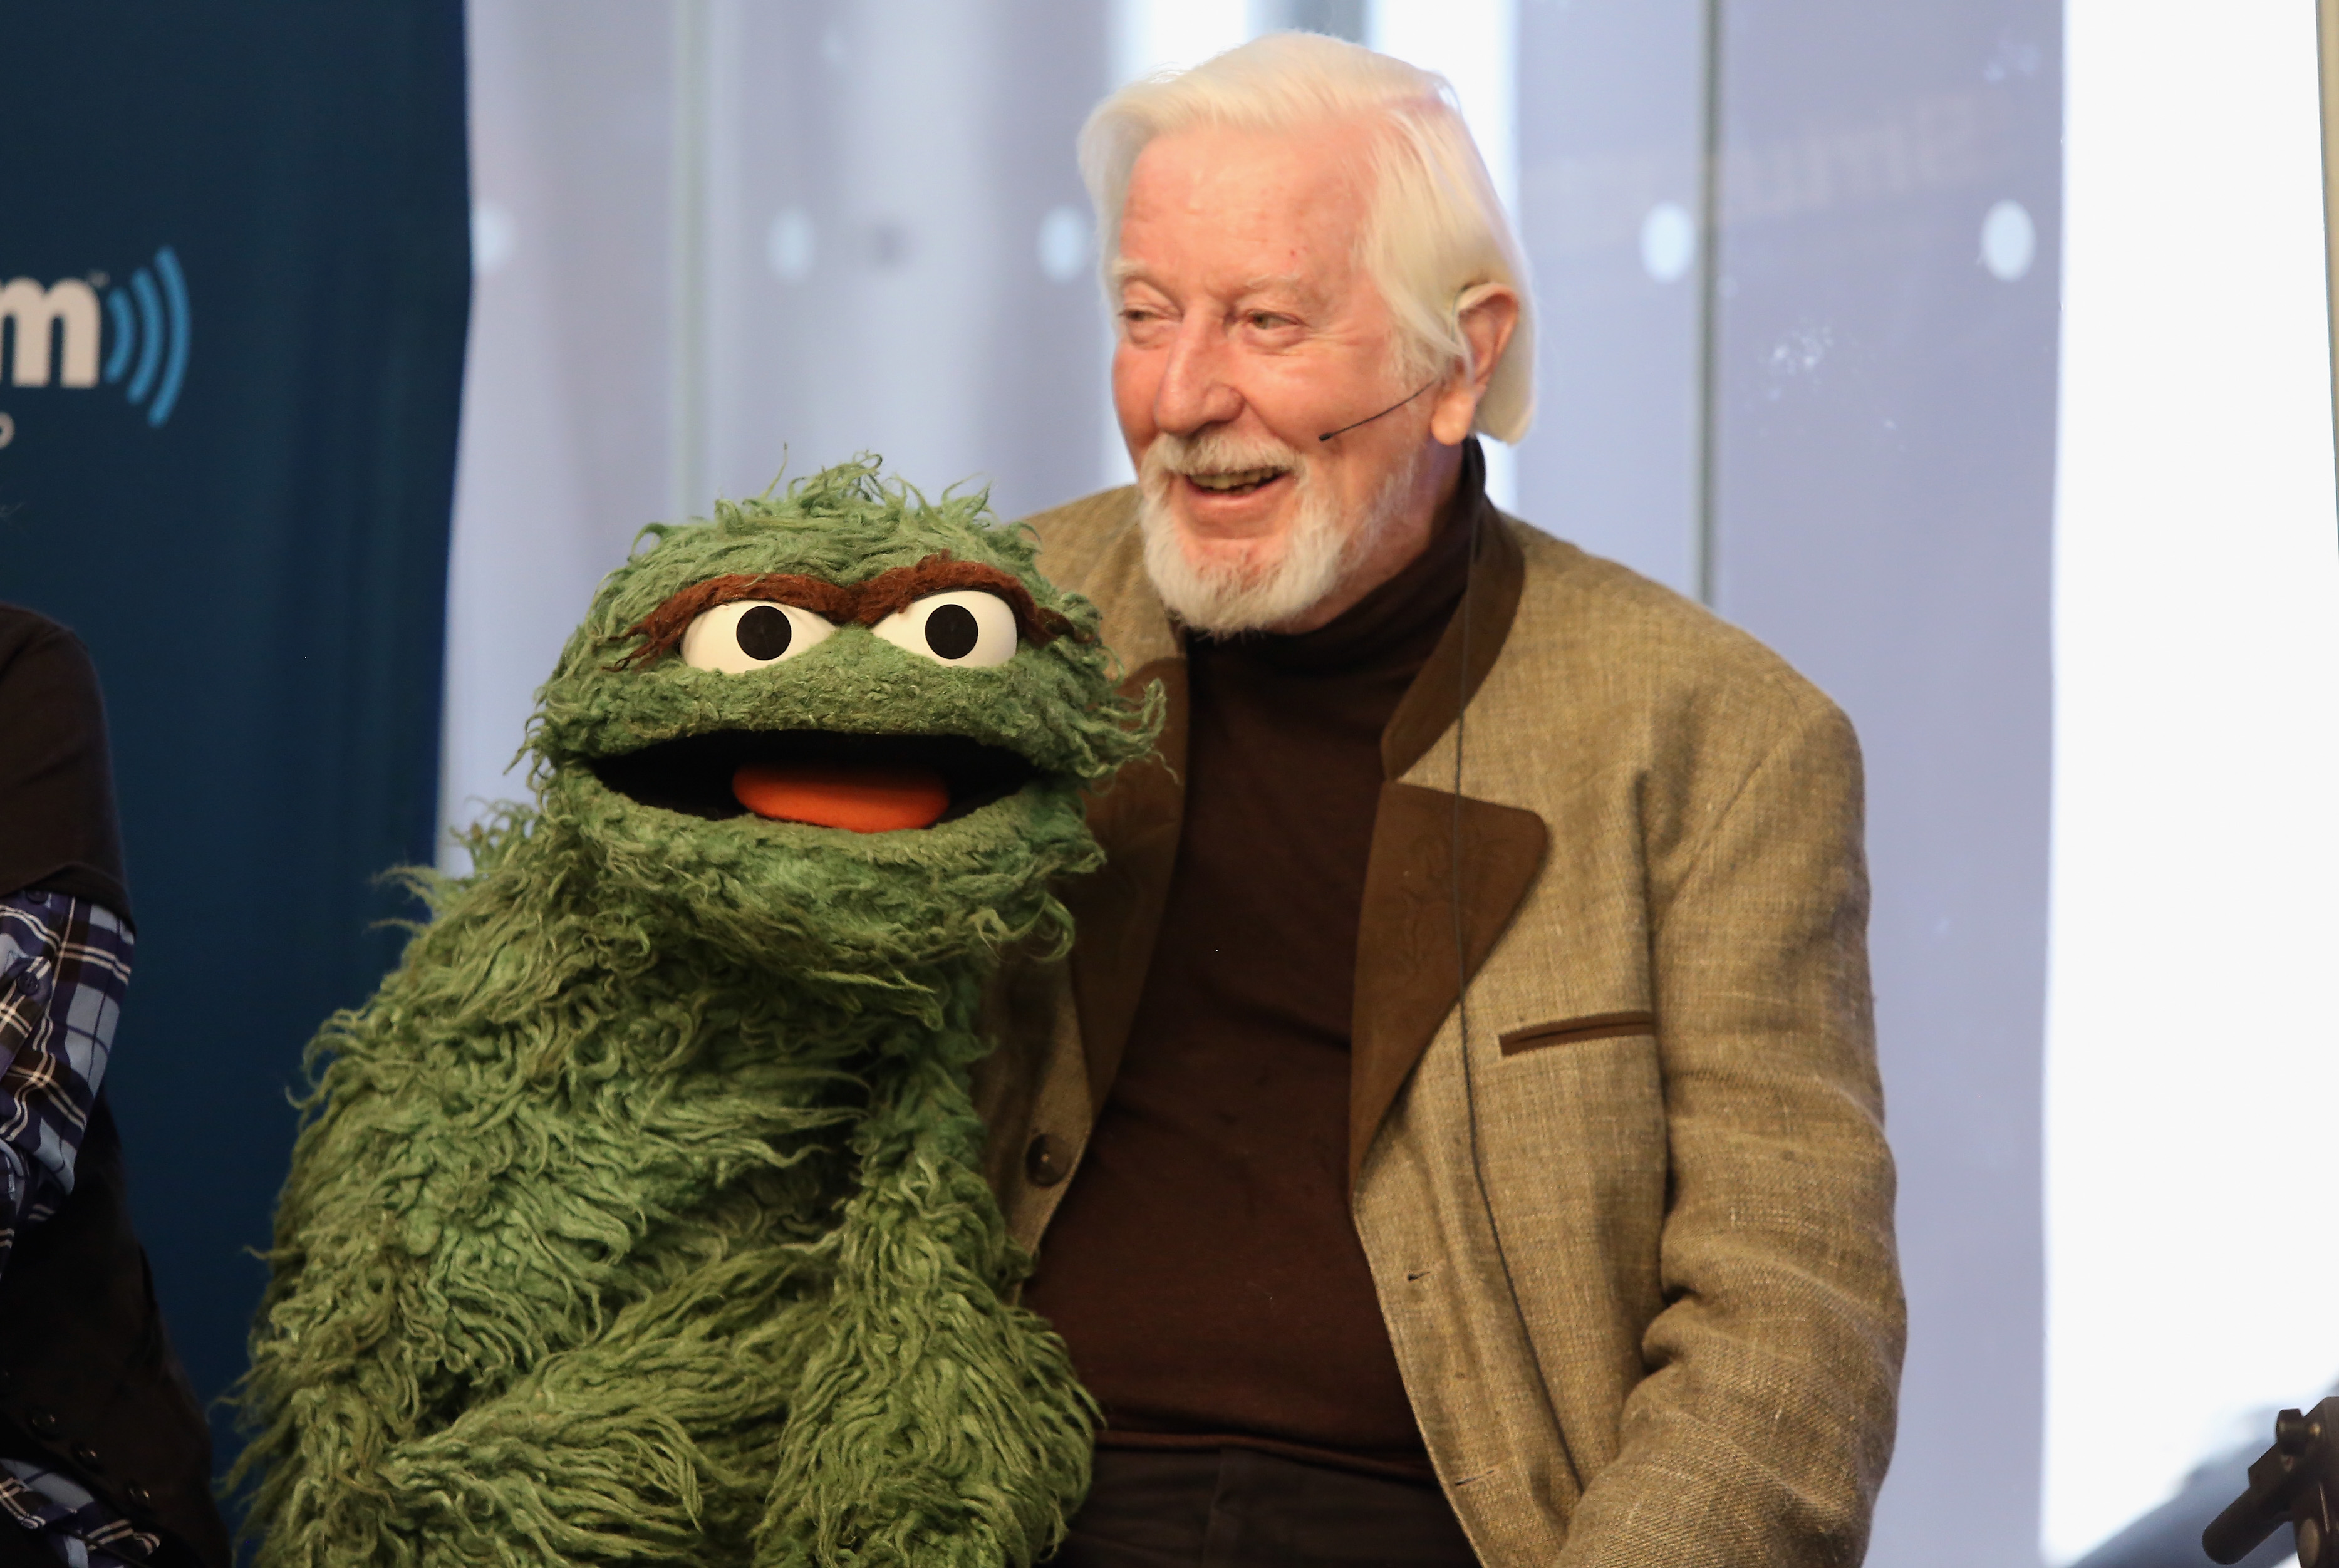 """Caroll Spinney """"Oscar and Big Bird"""" attends SiriusXM's Town Hall with original cast members from Sesame Street commemorating the 45th anniversary of the celebrated series debut on public television moderated by Weekend TODAY co-anchor Erica Hill on October 9, 2014 in New York City. (Photo by Robin Marchant/Getty Images for SiriusXM)"""